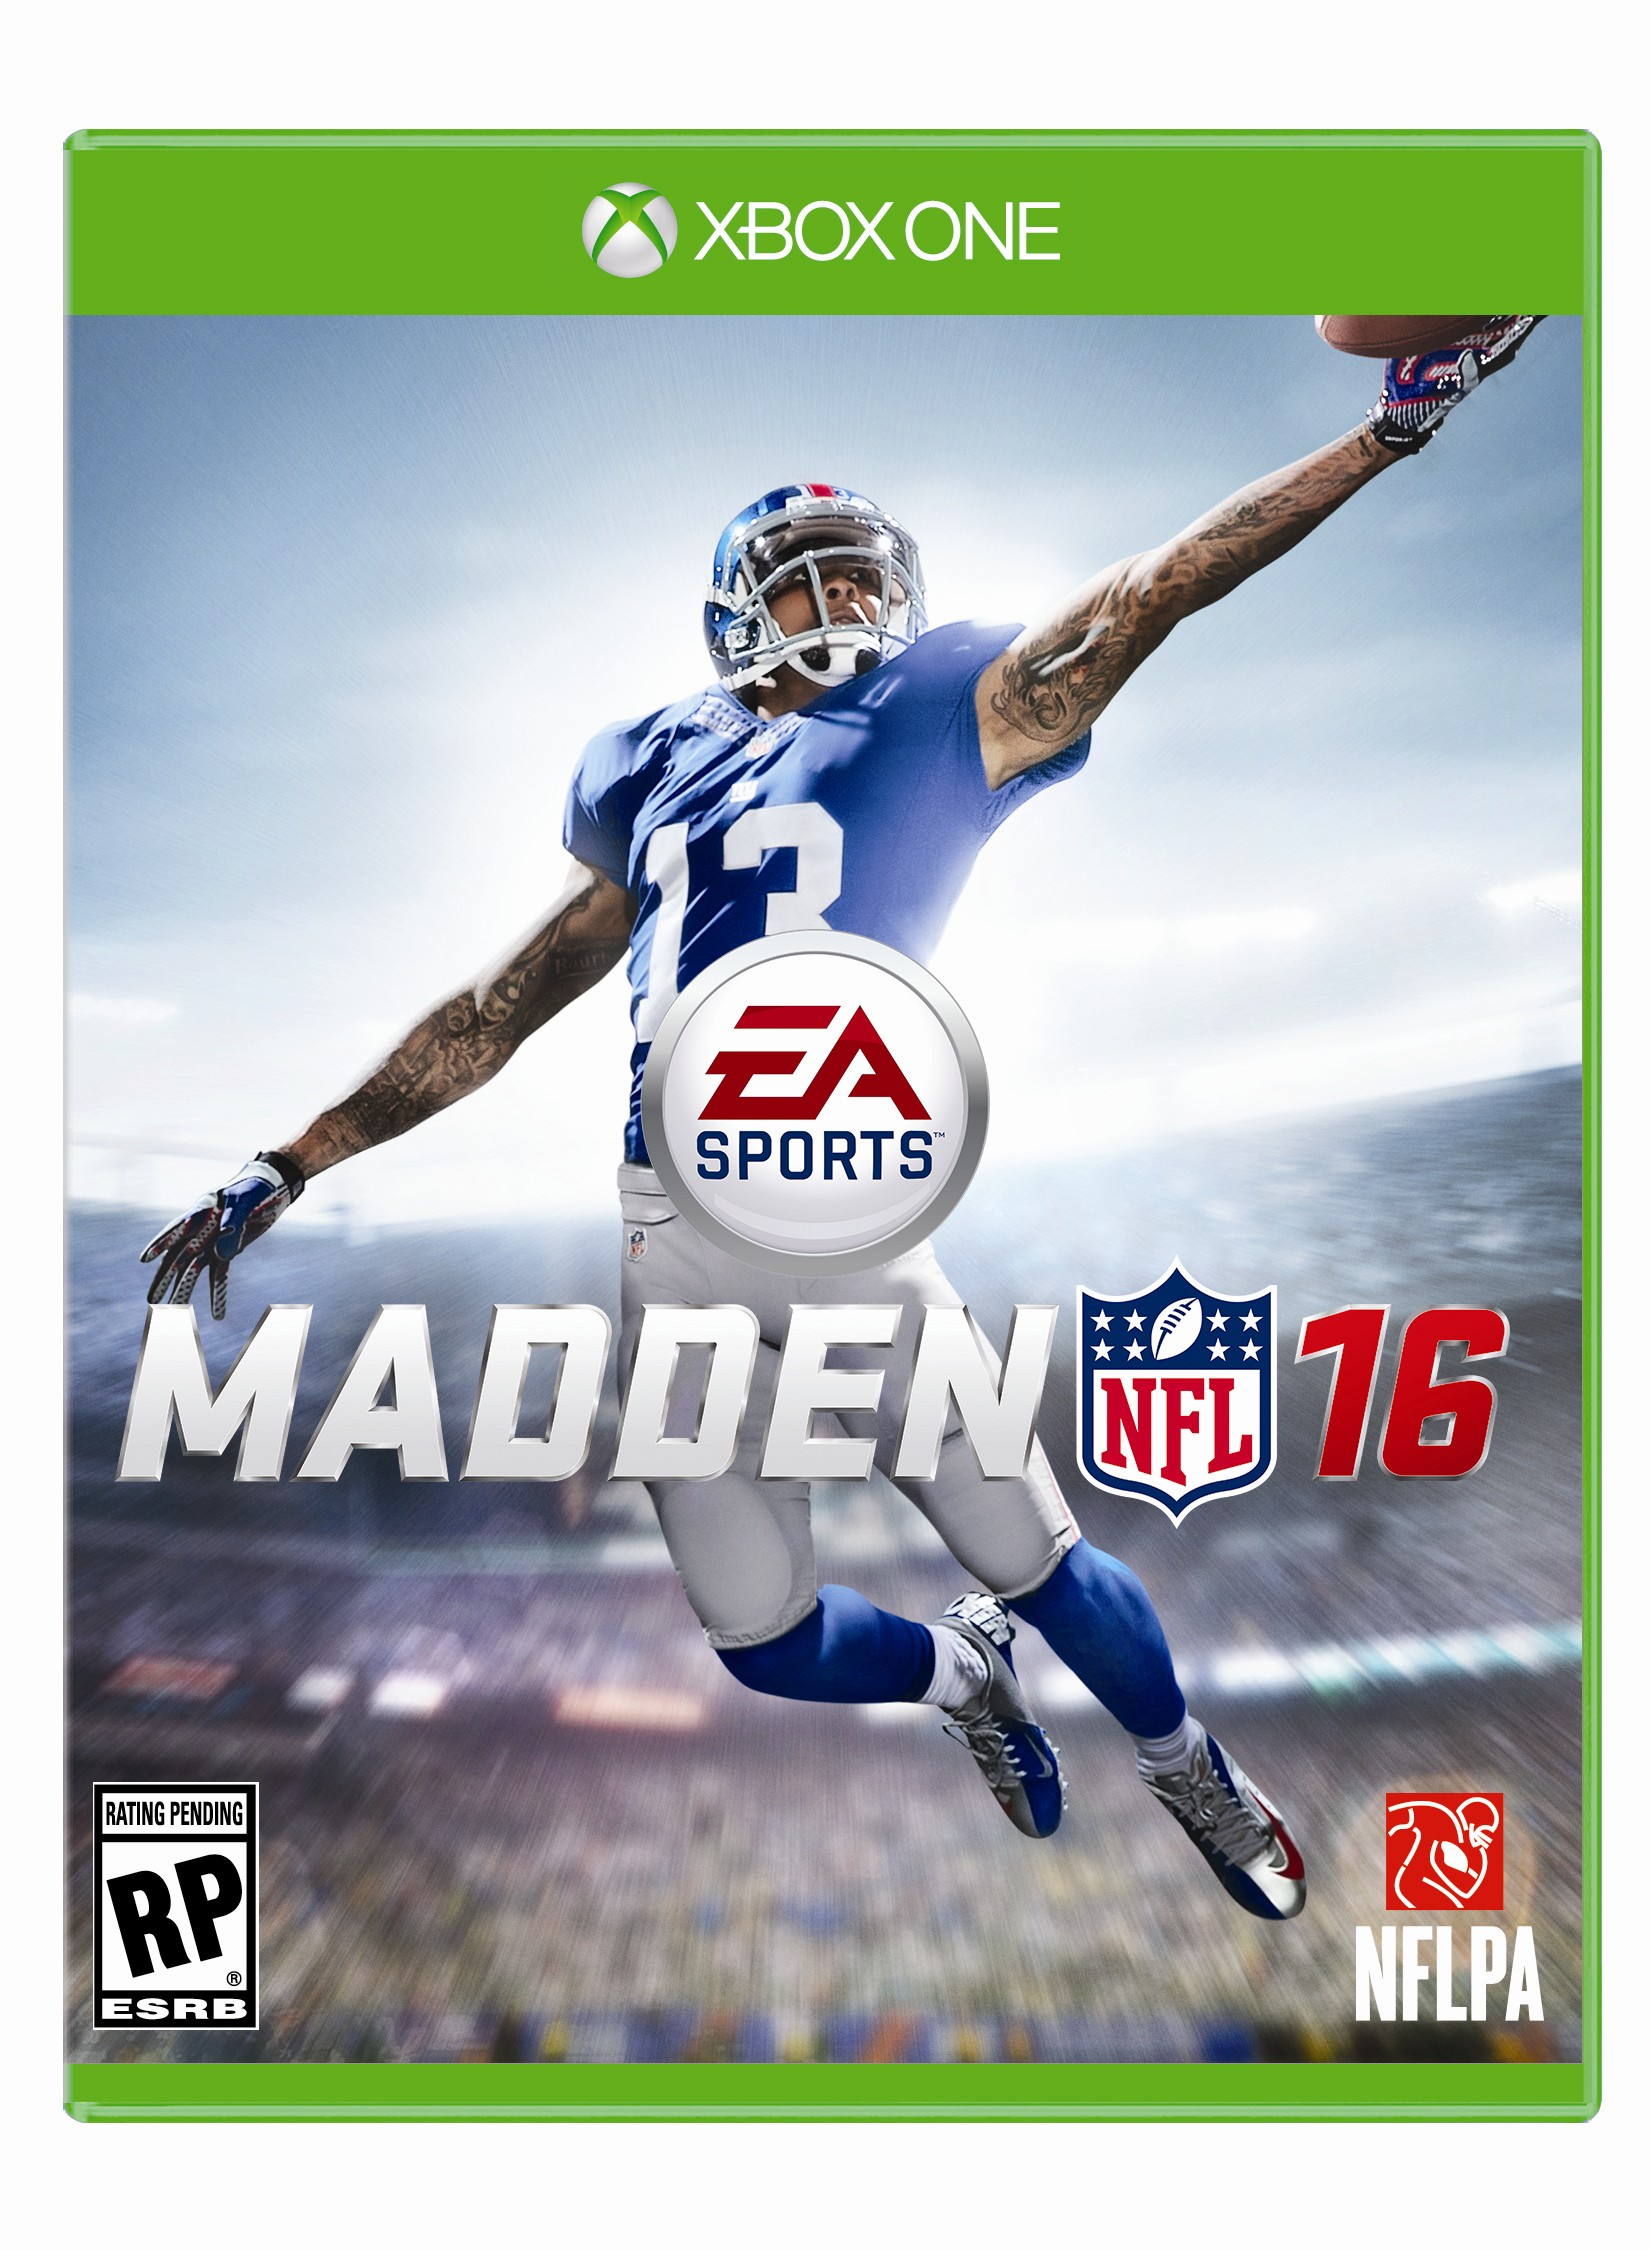 Box art - EA SPORTS Madden NFL 16